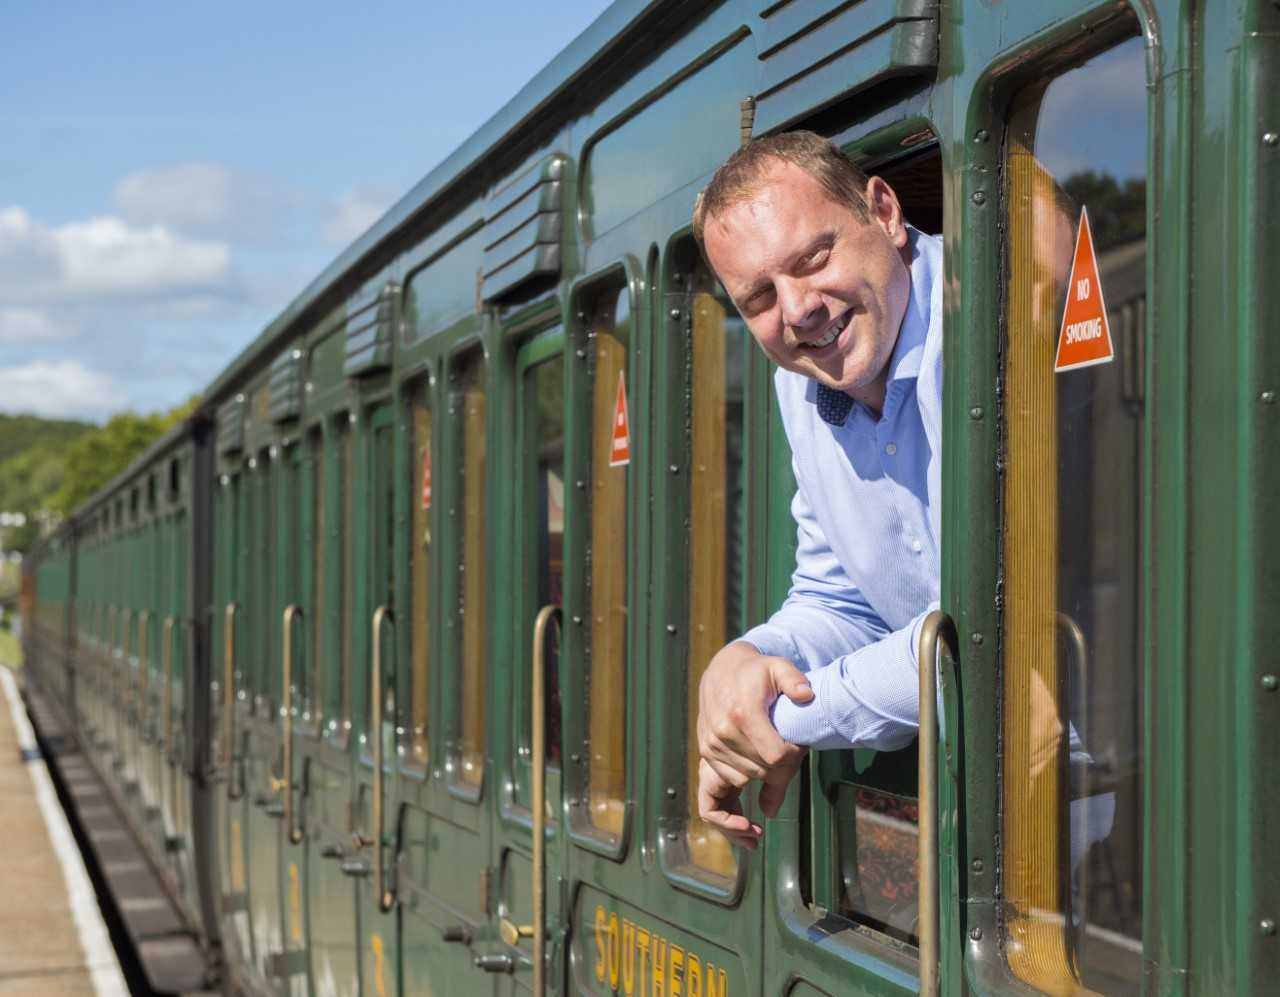 The Isle of Wight Steam Railway's new commercial manager, Richard Hale.